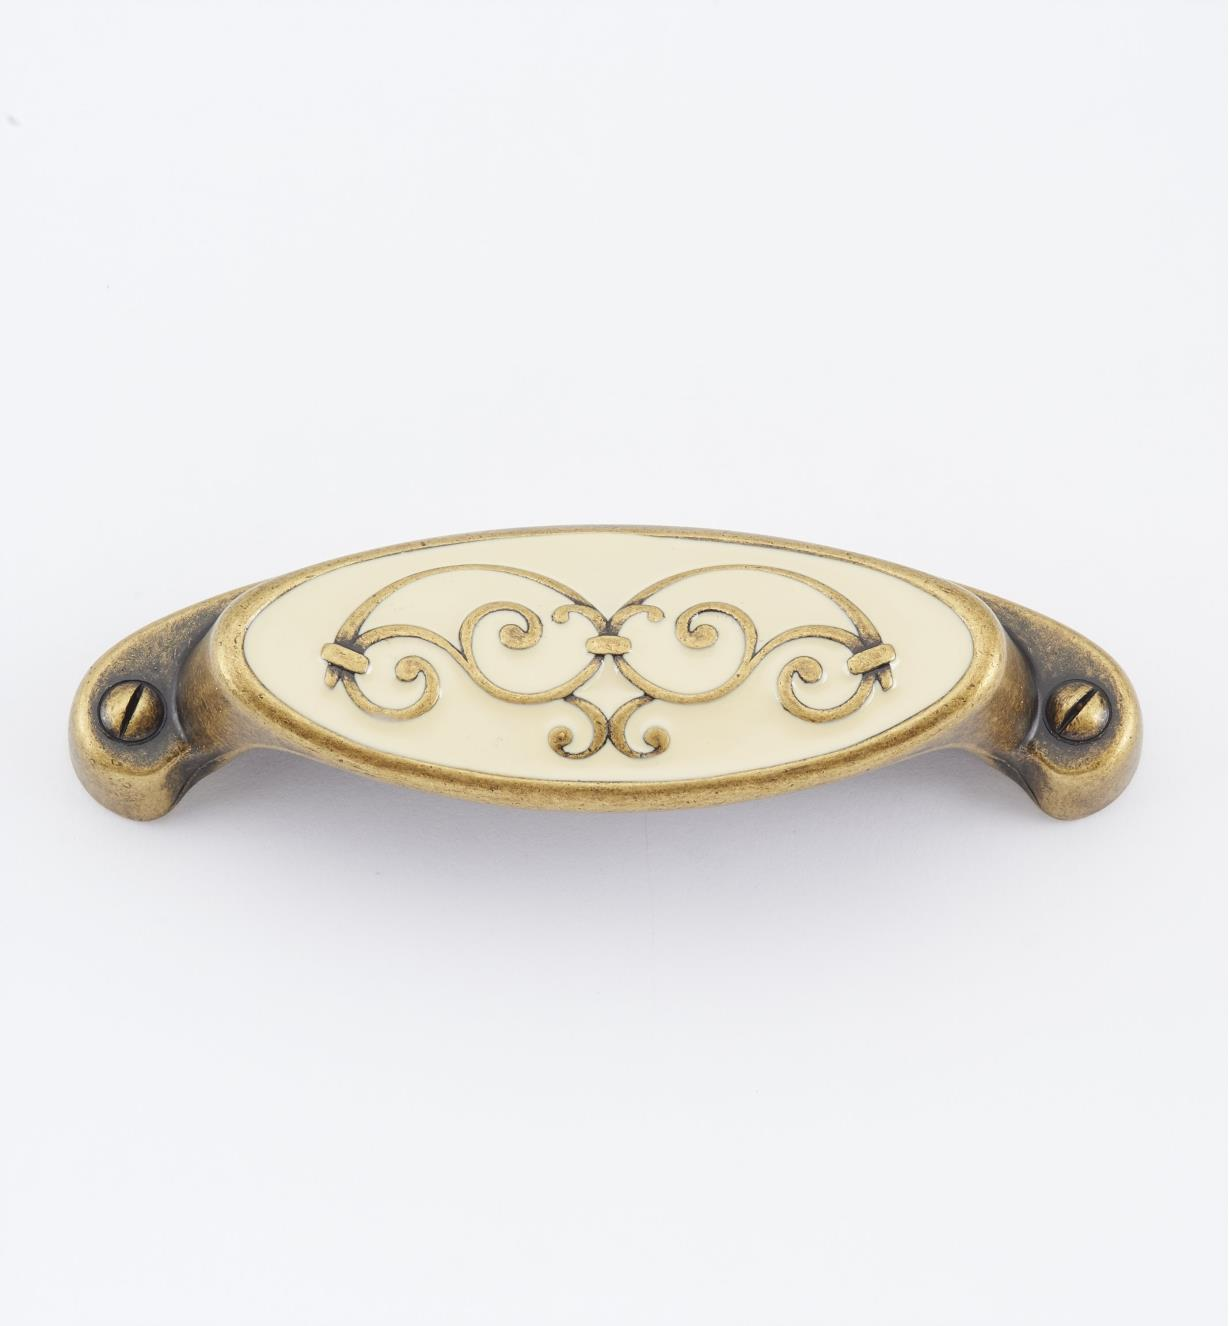 "01A2985 - 4"" (64mm) Filigree Oval Shell Pull"